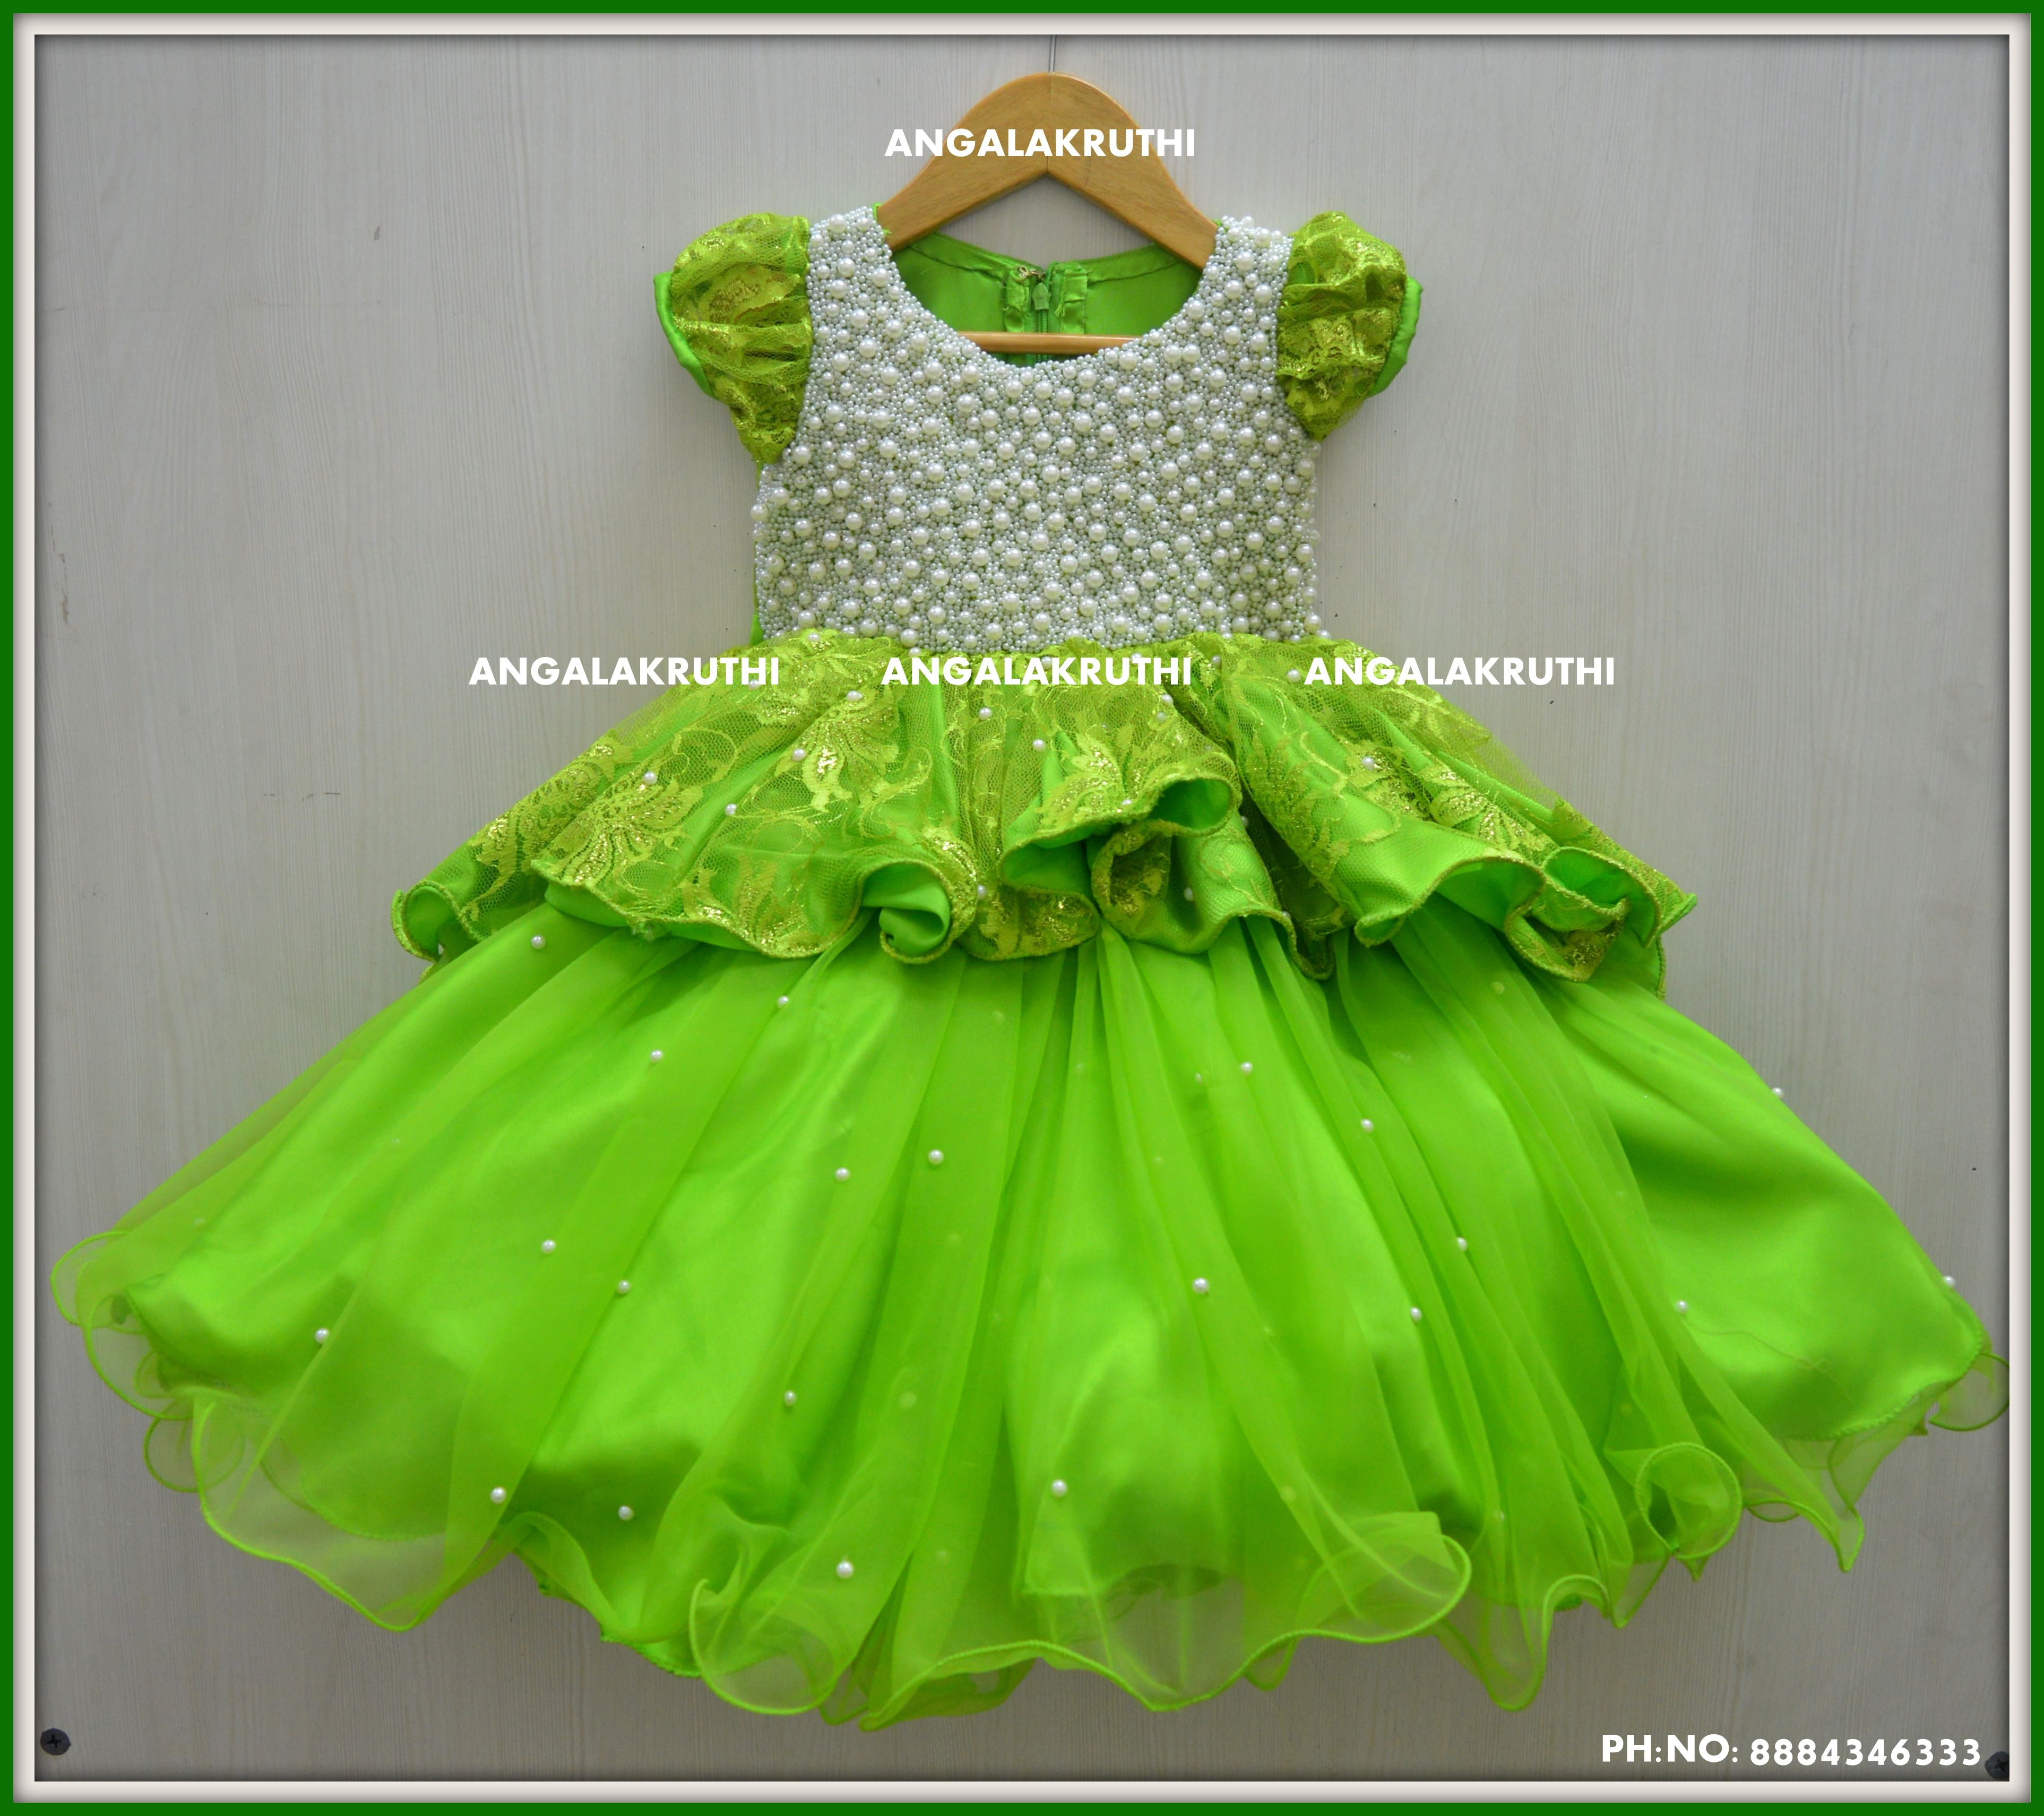 60fe08c03f8 kids designer frock with pearl hand embroidery  pearl hand embroidery  designs on kids frock  kids party wear dress designs Angalakruti-Boutique  bangalore